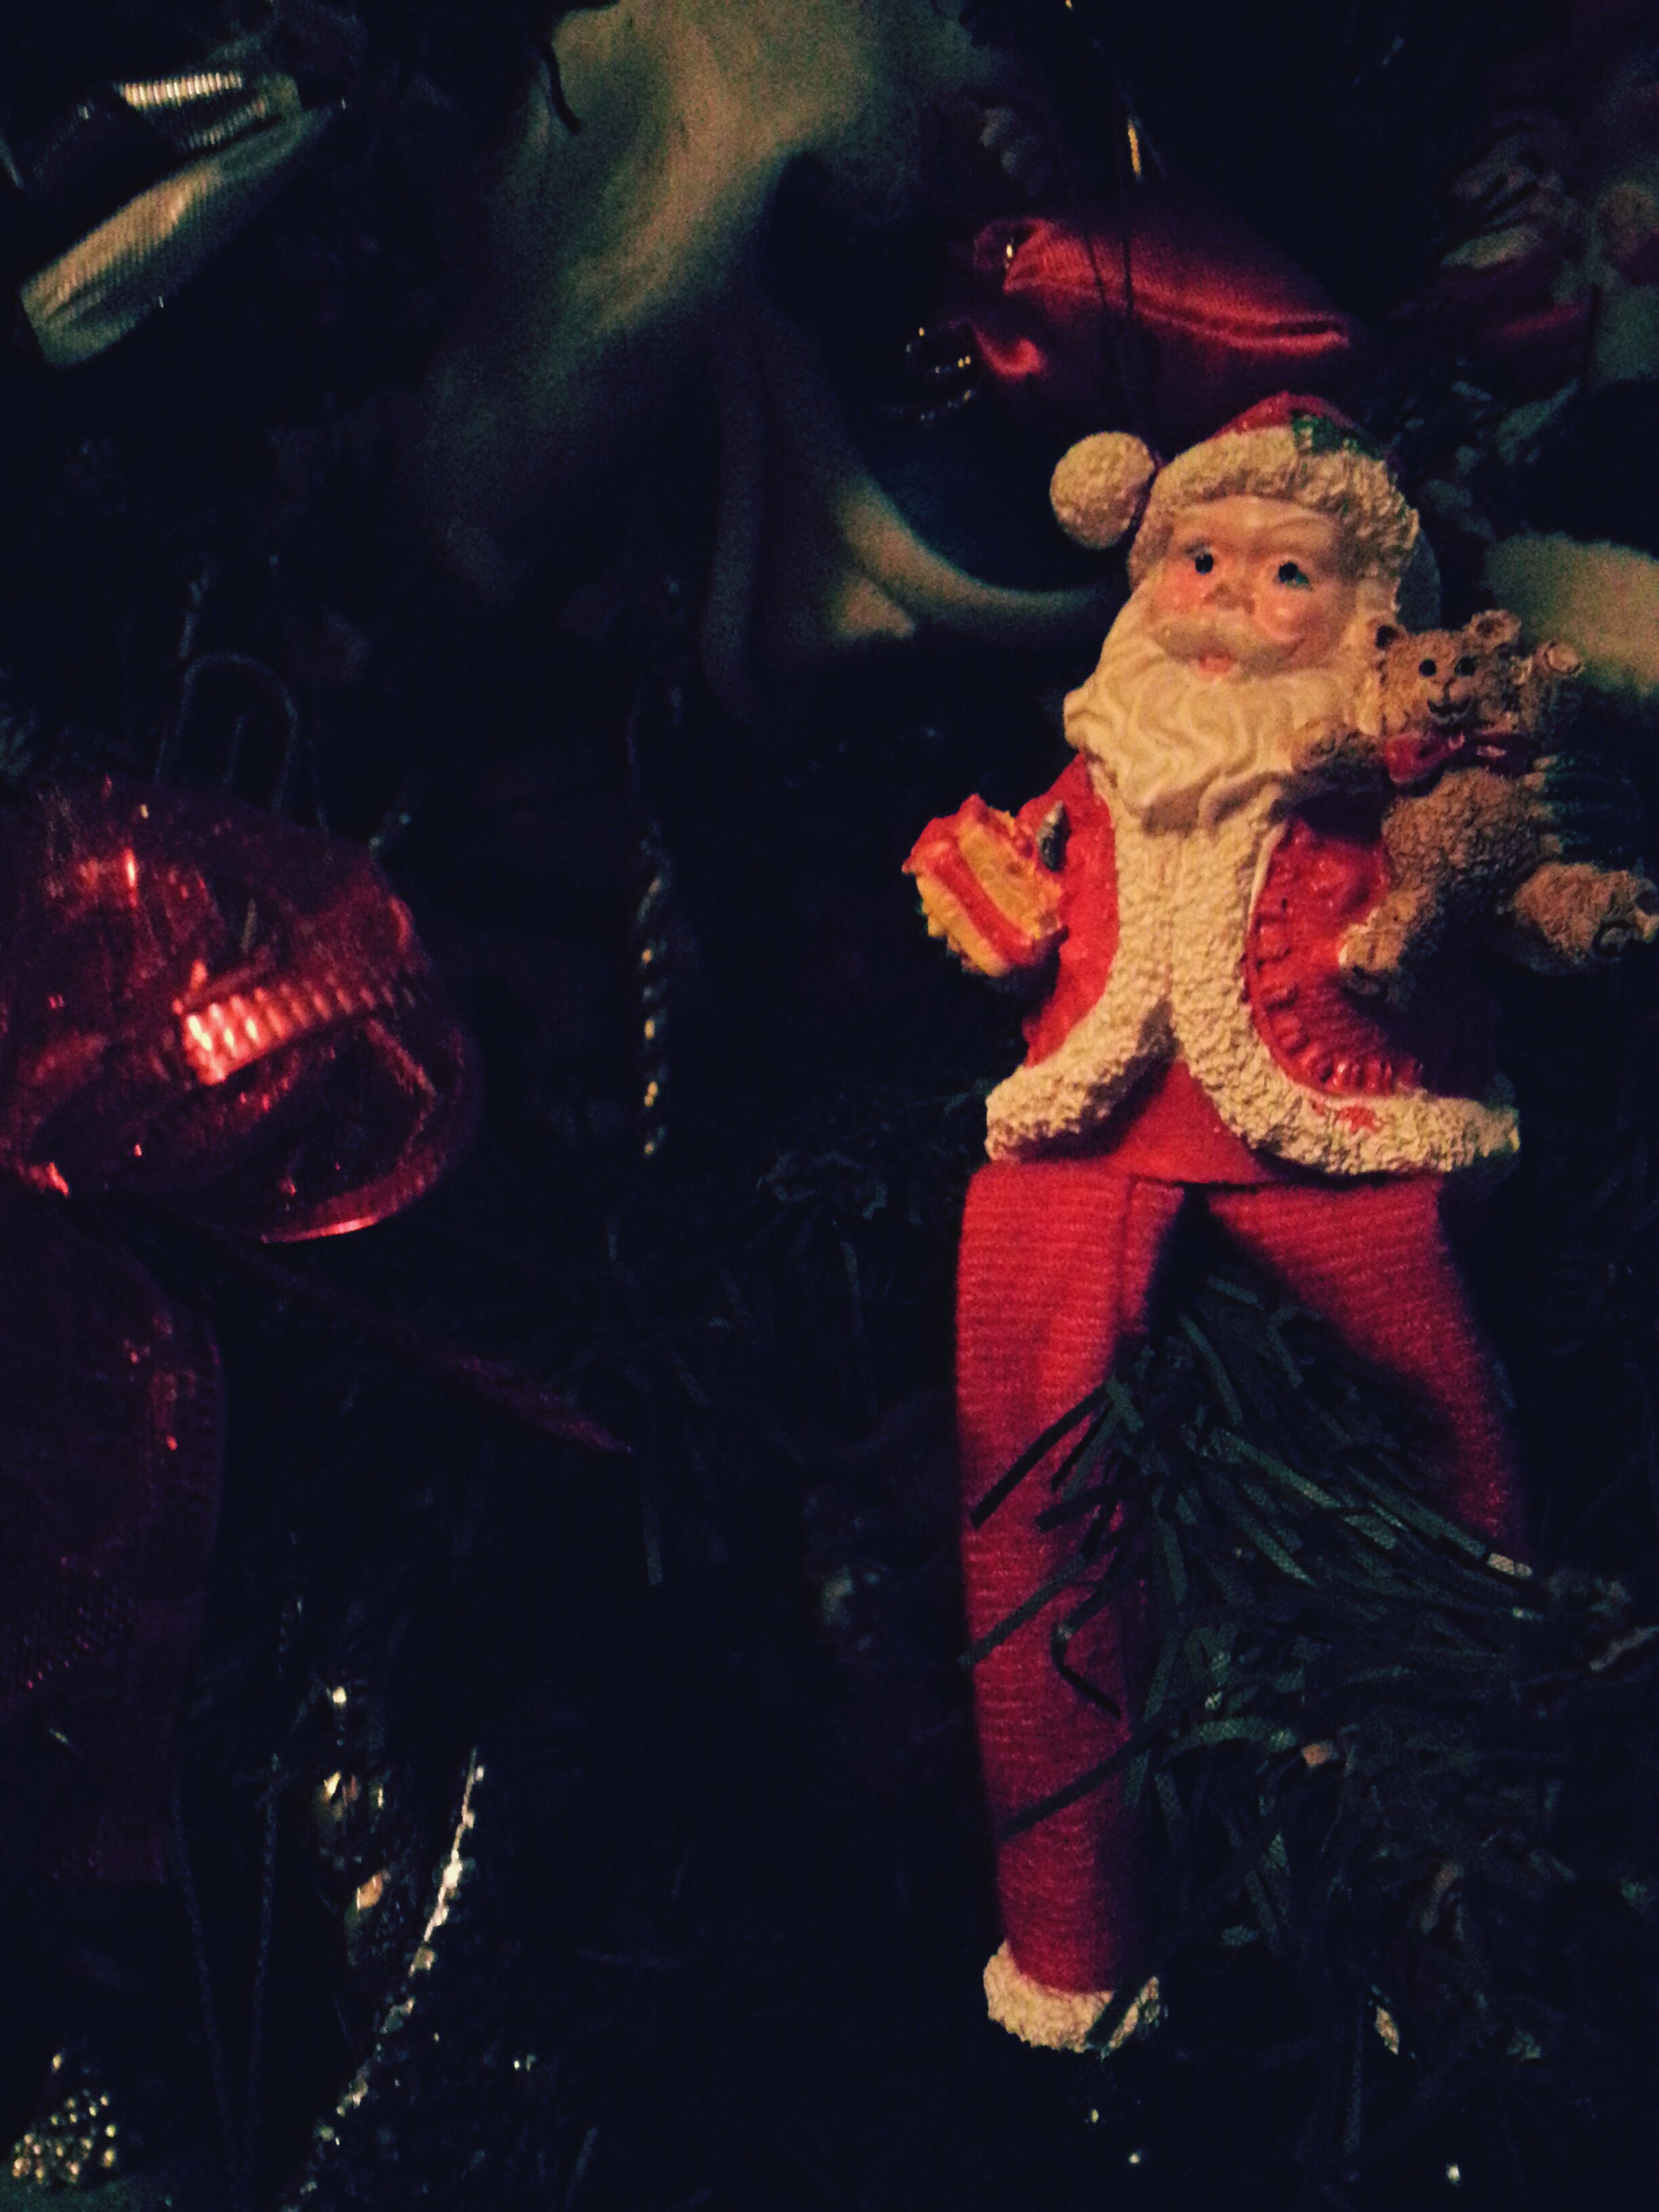 art and craft, art, night, creativity, human representation, tradition, celebration, red, christmas, animal representation, cultures, close-up, decoration, multi colored, no people, christmas decoration, outdoors, sculpture